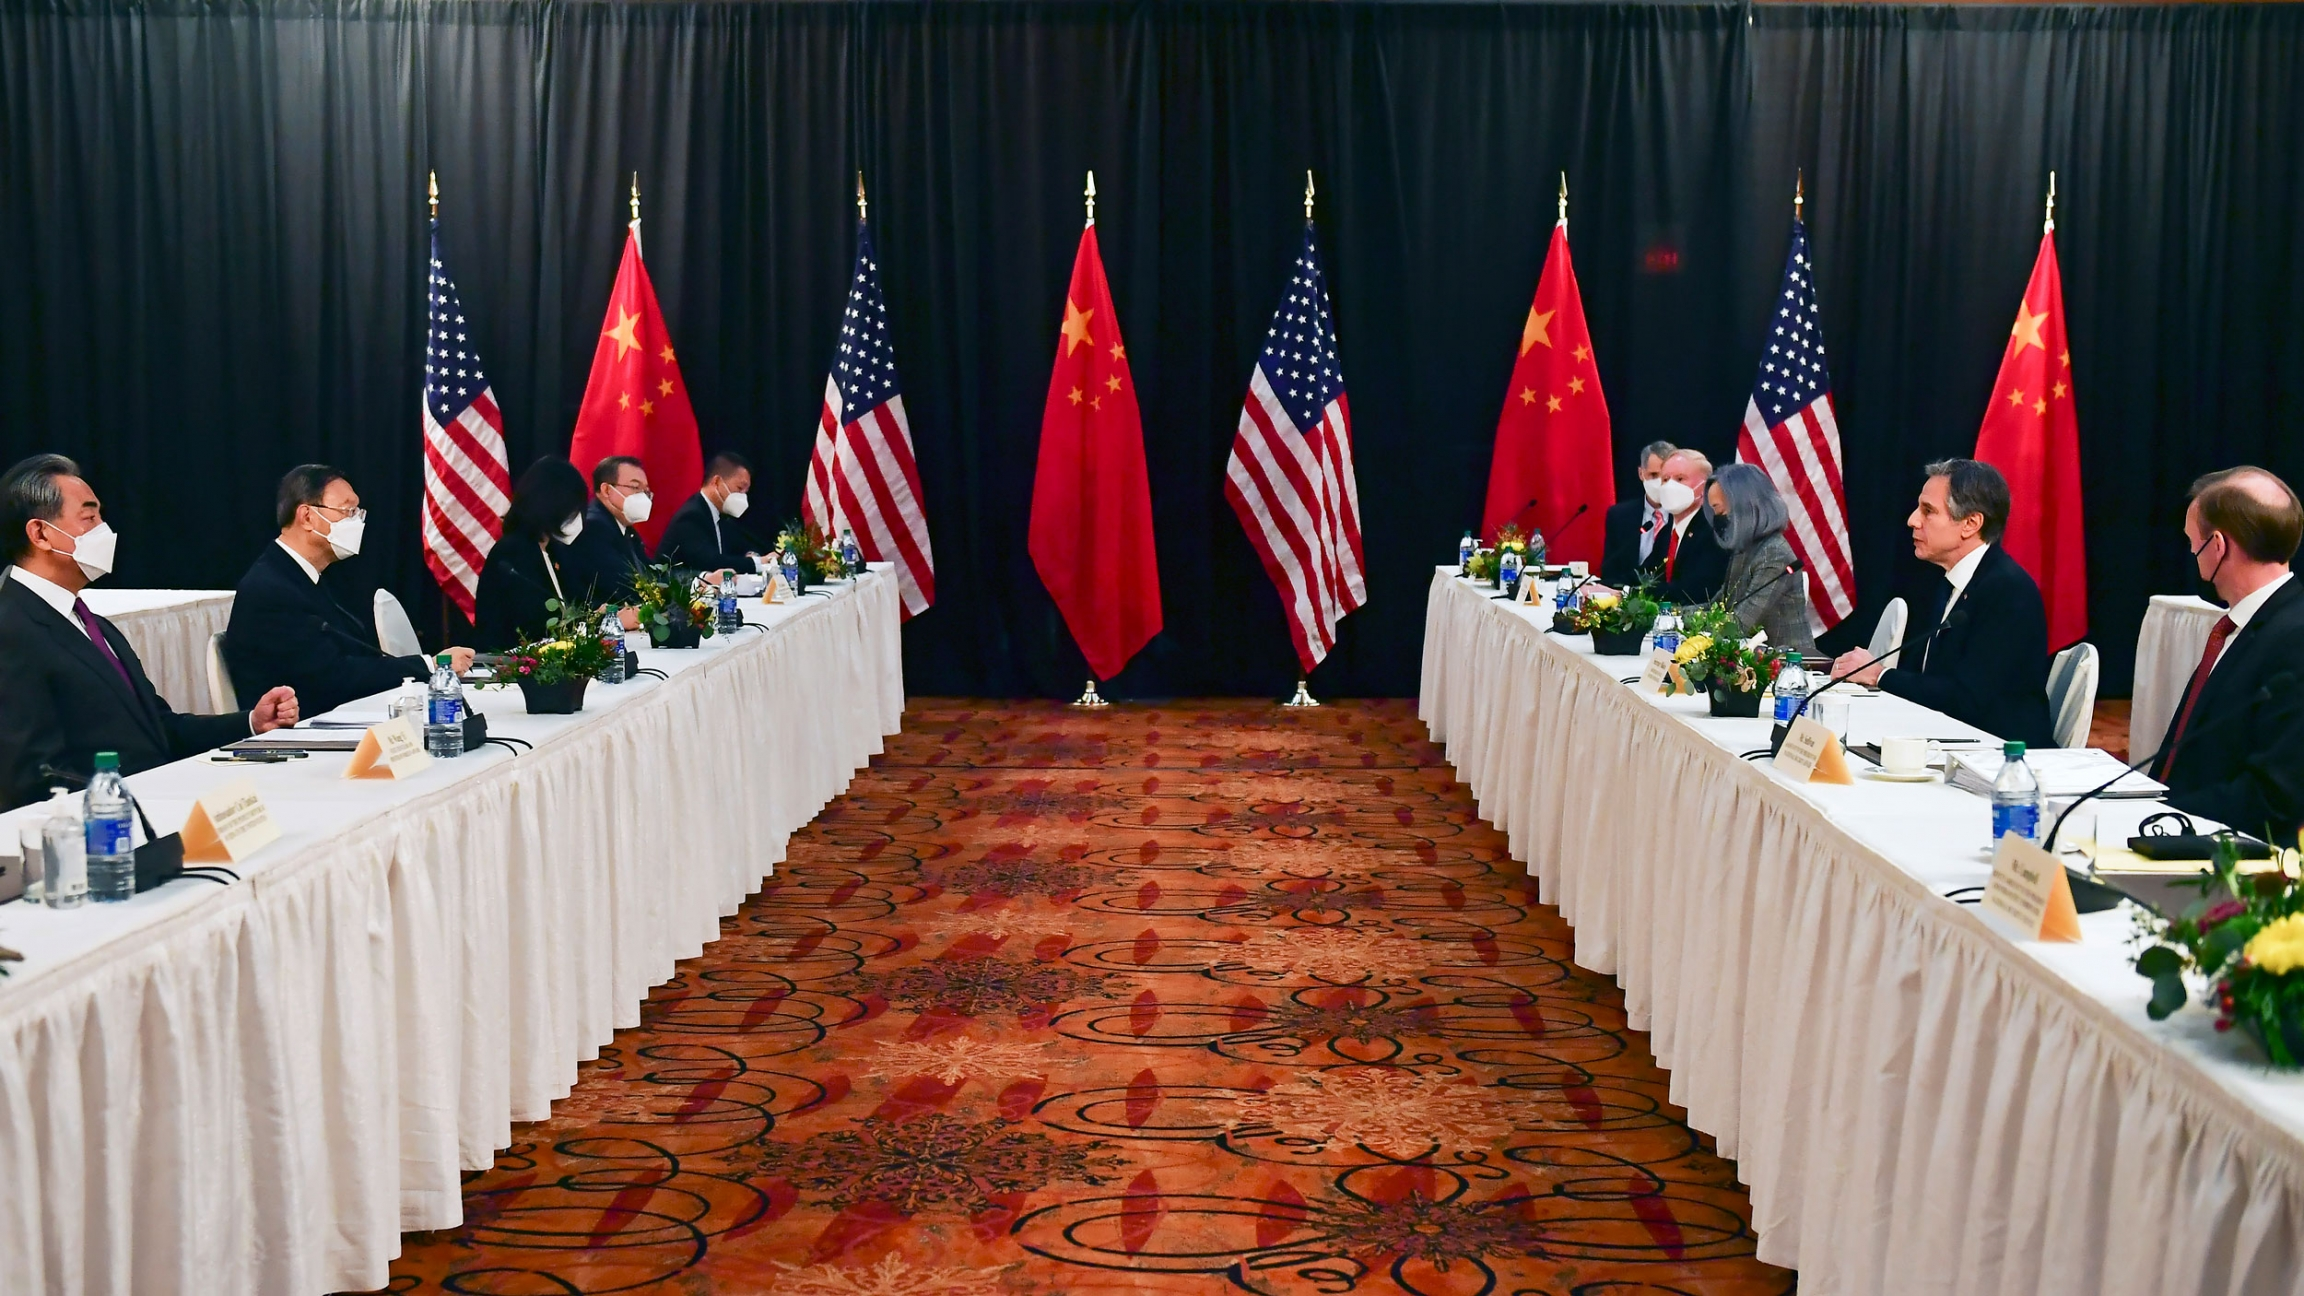 Two long rows of tables are shown with white table cloths and officials on either side with US and Chinese flags in the distance.